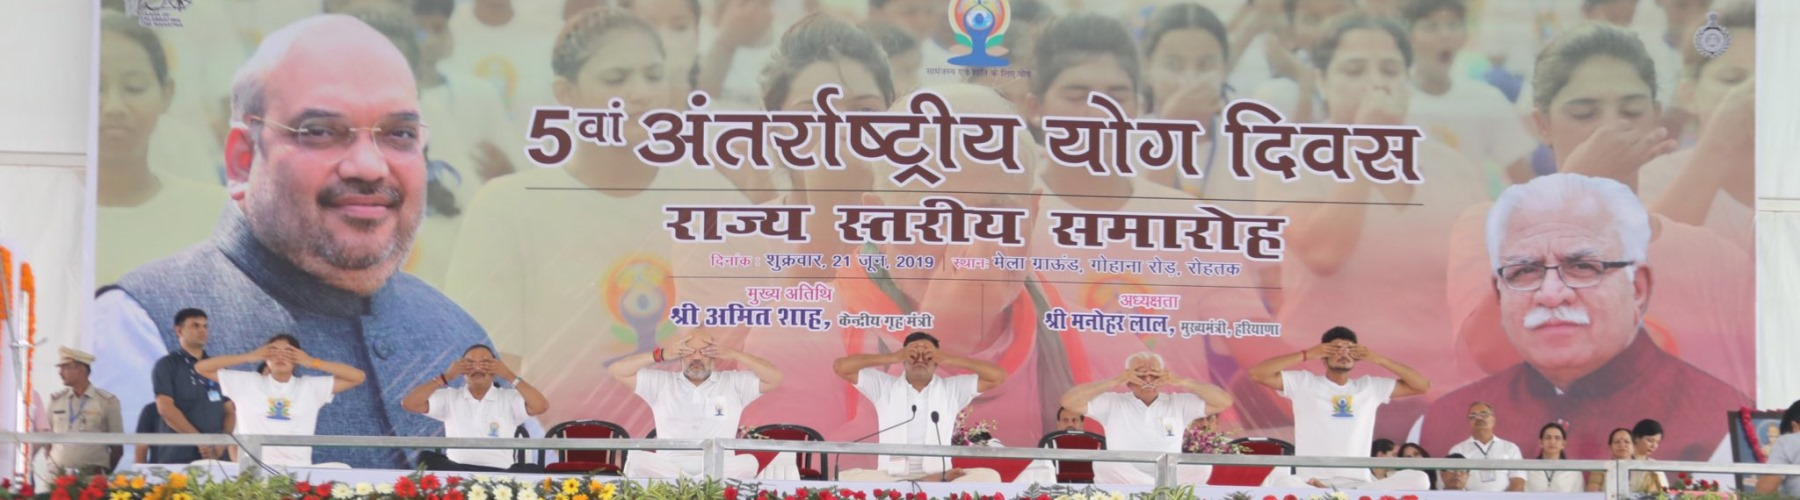 Haryana Shri Manohar Lal Khattar at the celebrations of the 5th International Day of Yoga in Rohtak, Haryana on 21 June, 2019.